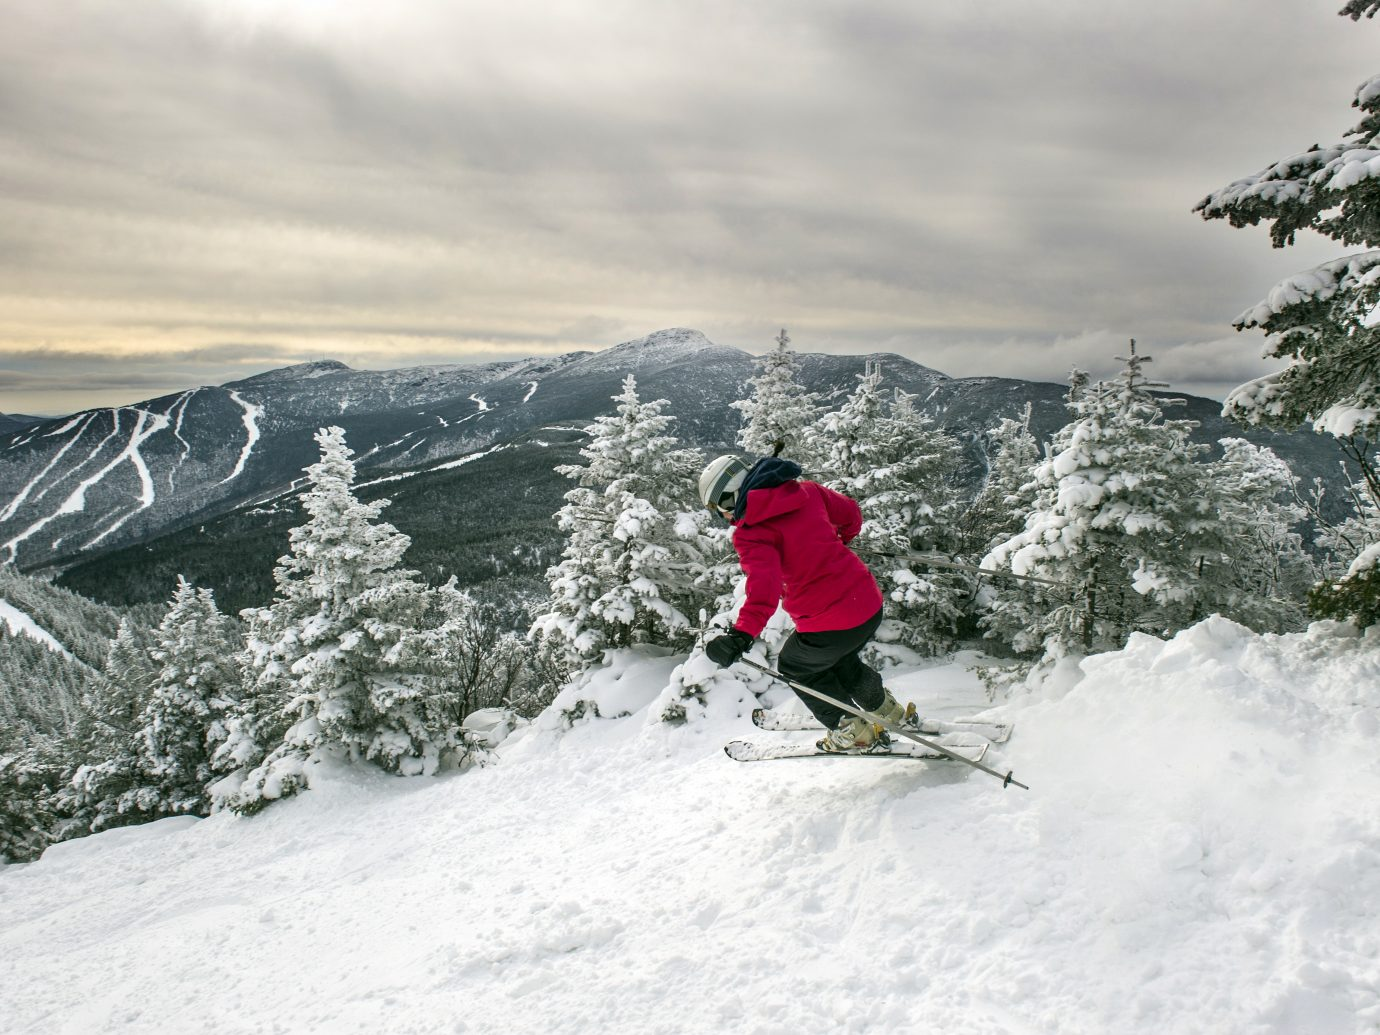 Person in red skiing down slopes at Smuggler's Notch